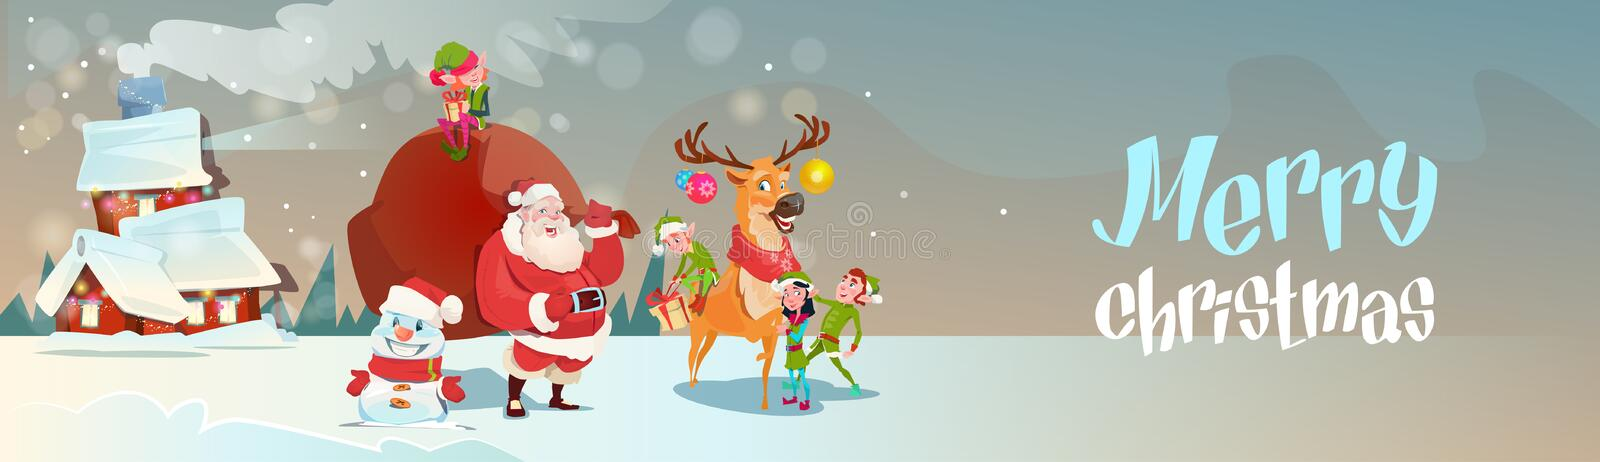 Santa Claus With Reindeer Elfs Gift Sack Coming To House Happy New Year Merry Christmas Banner stock illustration